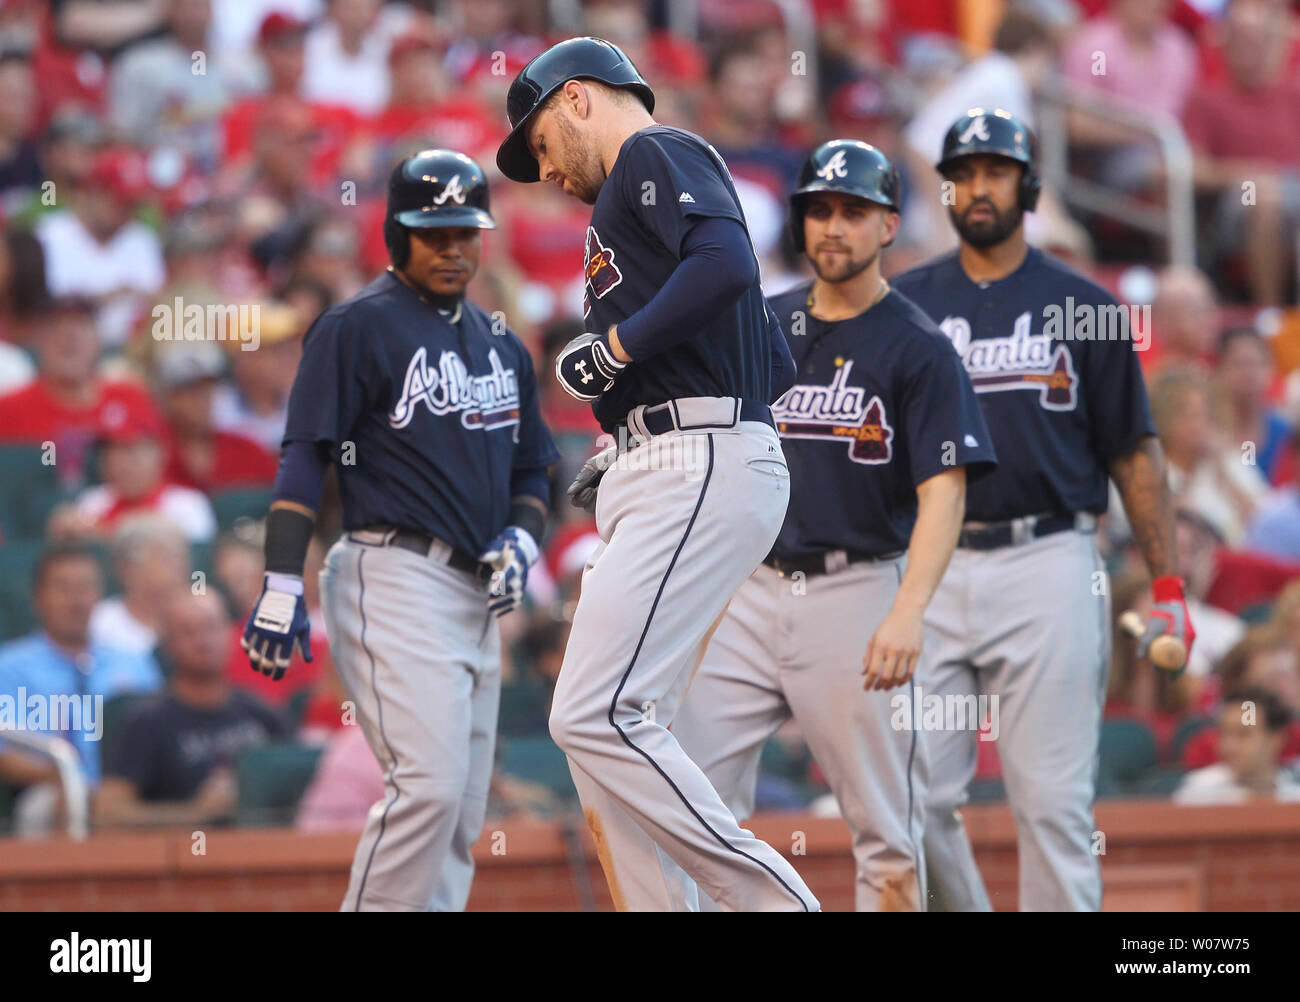 Atlanta Braves teammates wait for Freddie Freeman to touch home plate after he hit a three run home run in the third inning against the St. Louis Cardinals at Busch Stadium in St. Louis on August 6, 2016.    Photo by Bill Greenblatt/UPI Stock Photo